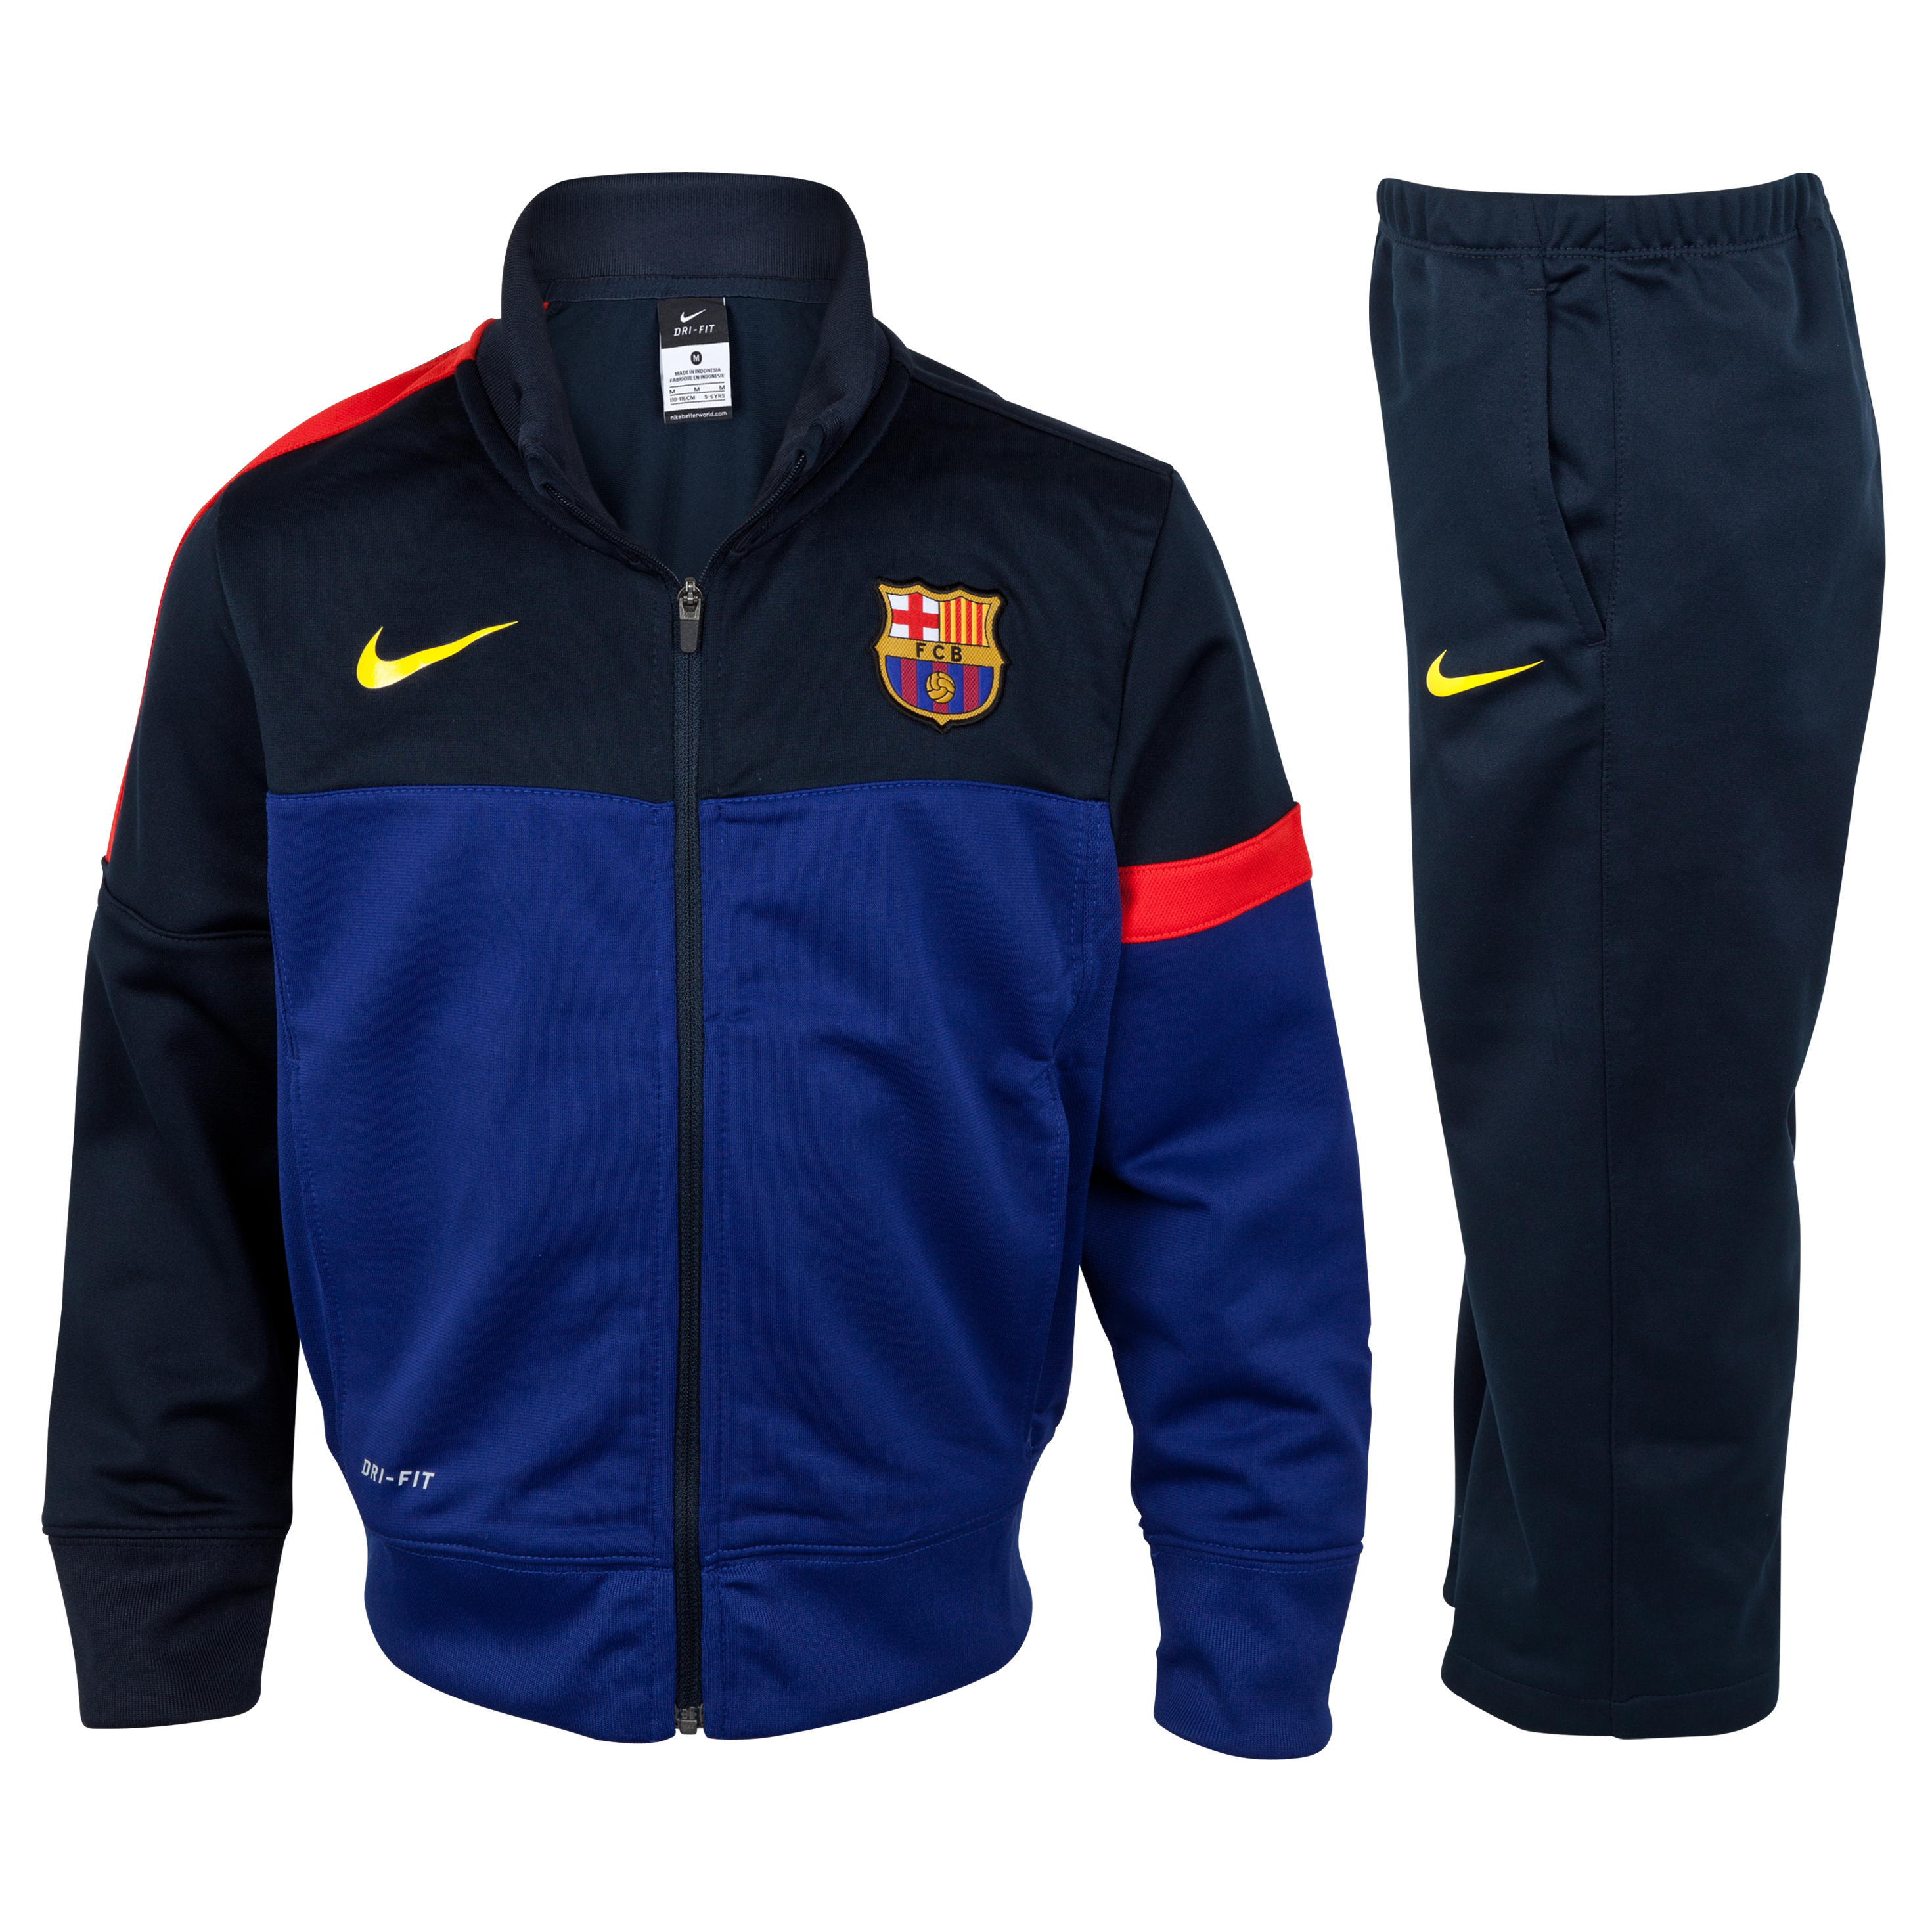 Barcelona Sideline Knit Warm-up Tracksuit - Deep Royal Blue/Tour Yellow - Youths